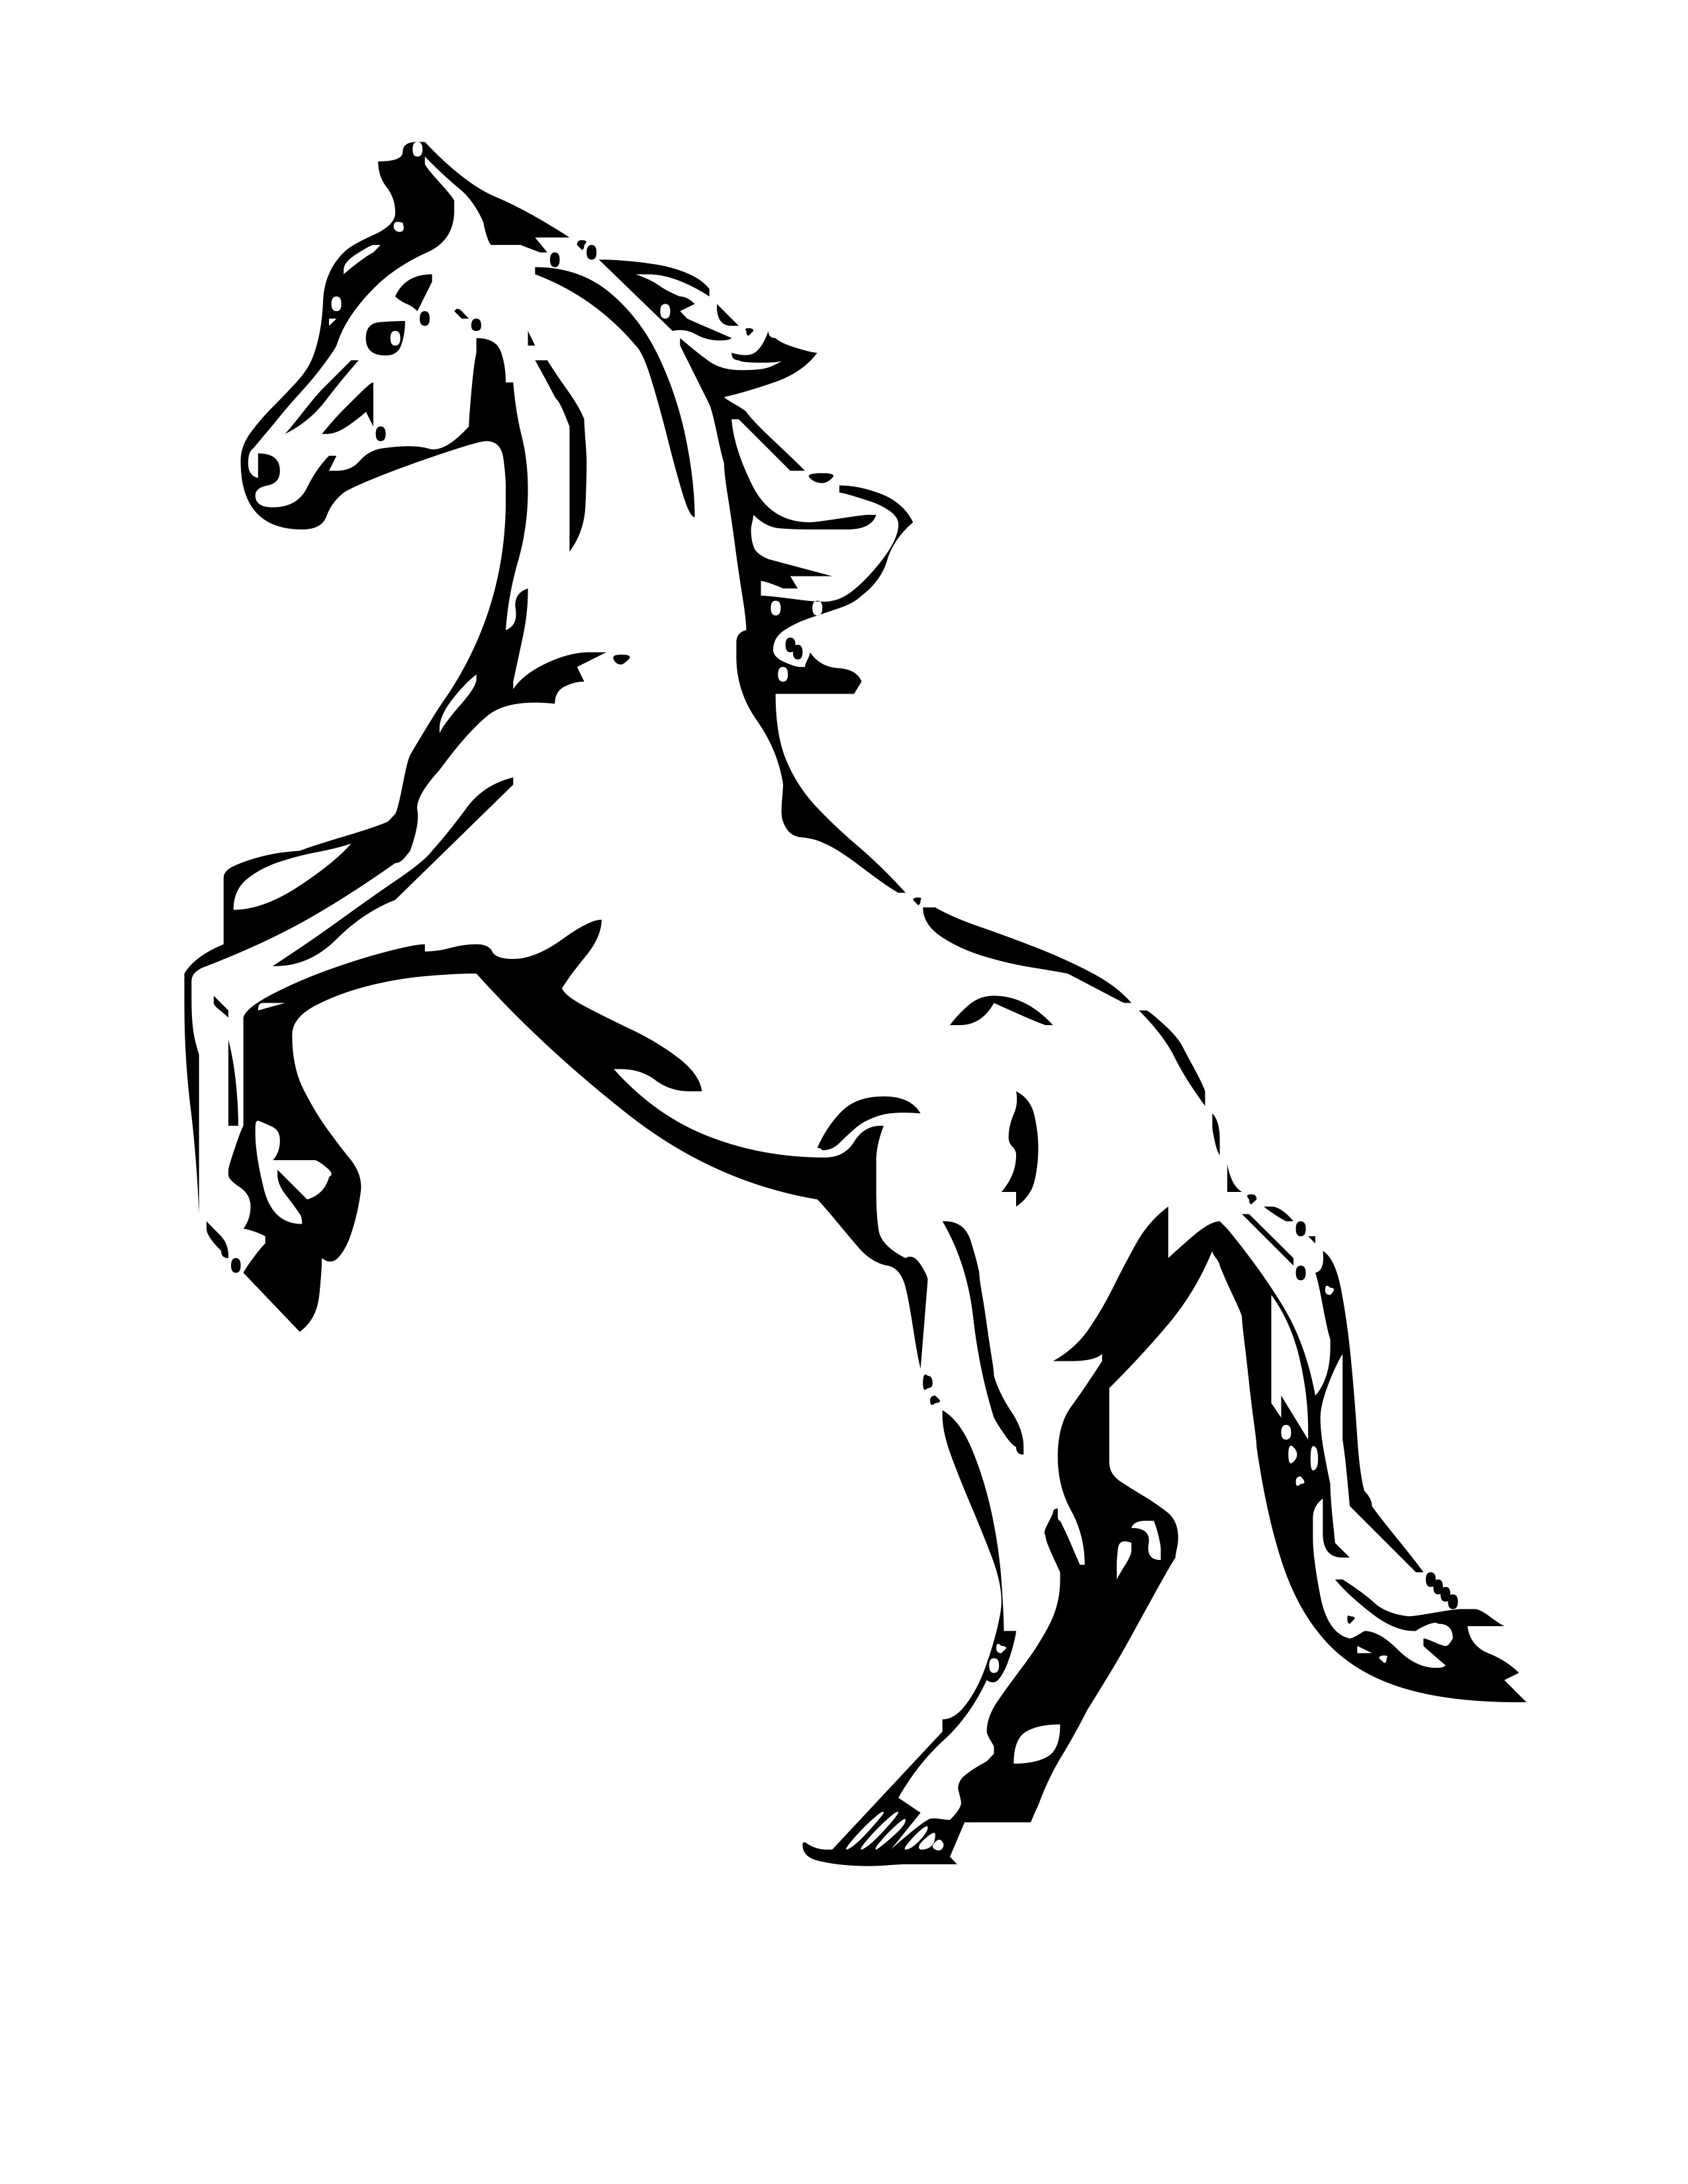 mustang horse coloring pages mustang horse coloring pages coloring pages to pages horse mustang coloring